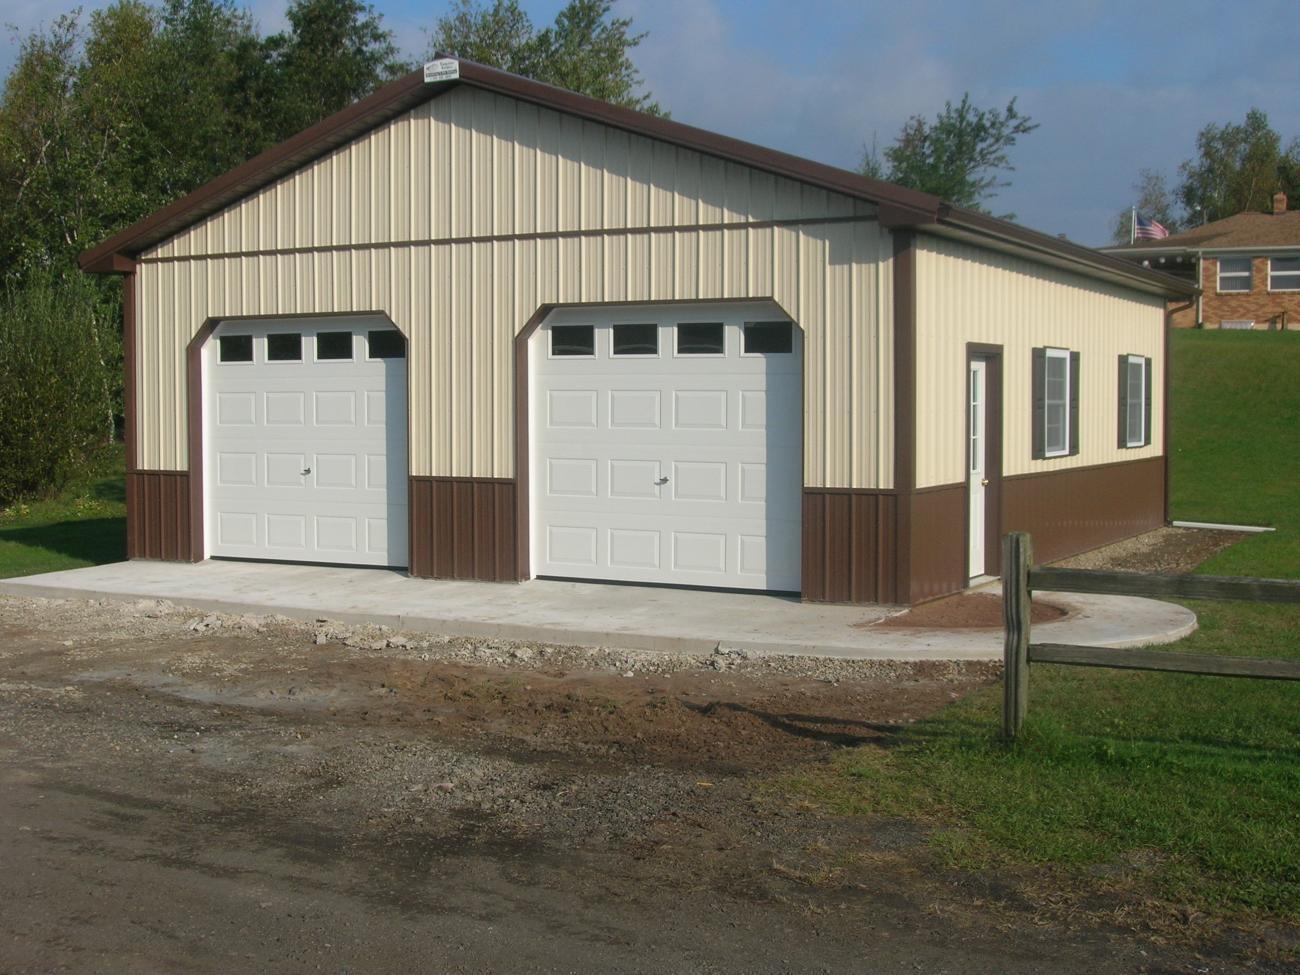 Cost Per Square Foot To Build A Garage Home Desain 2018